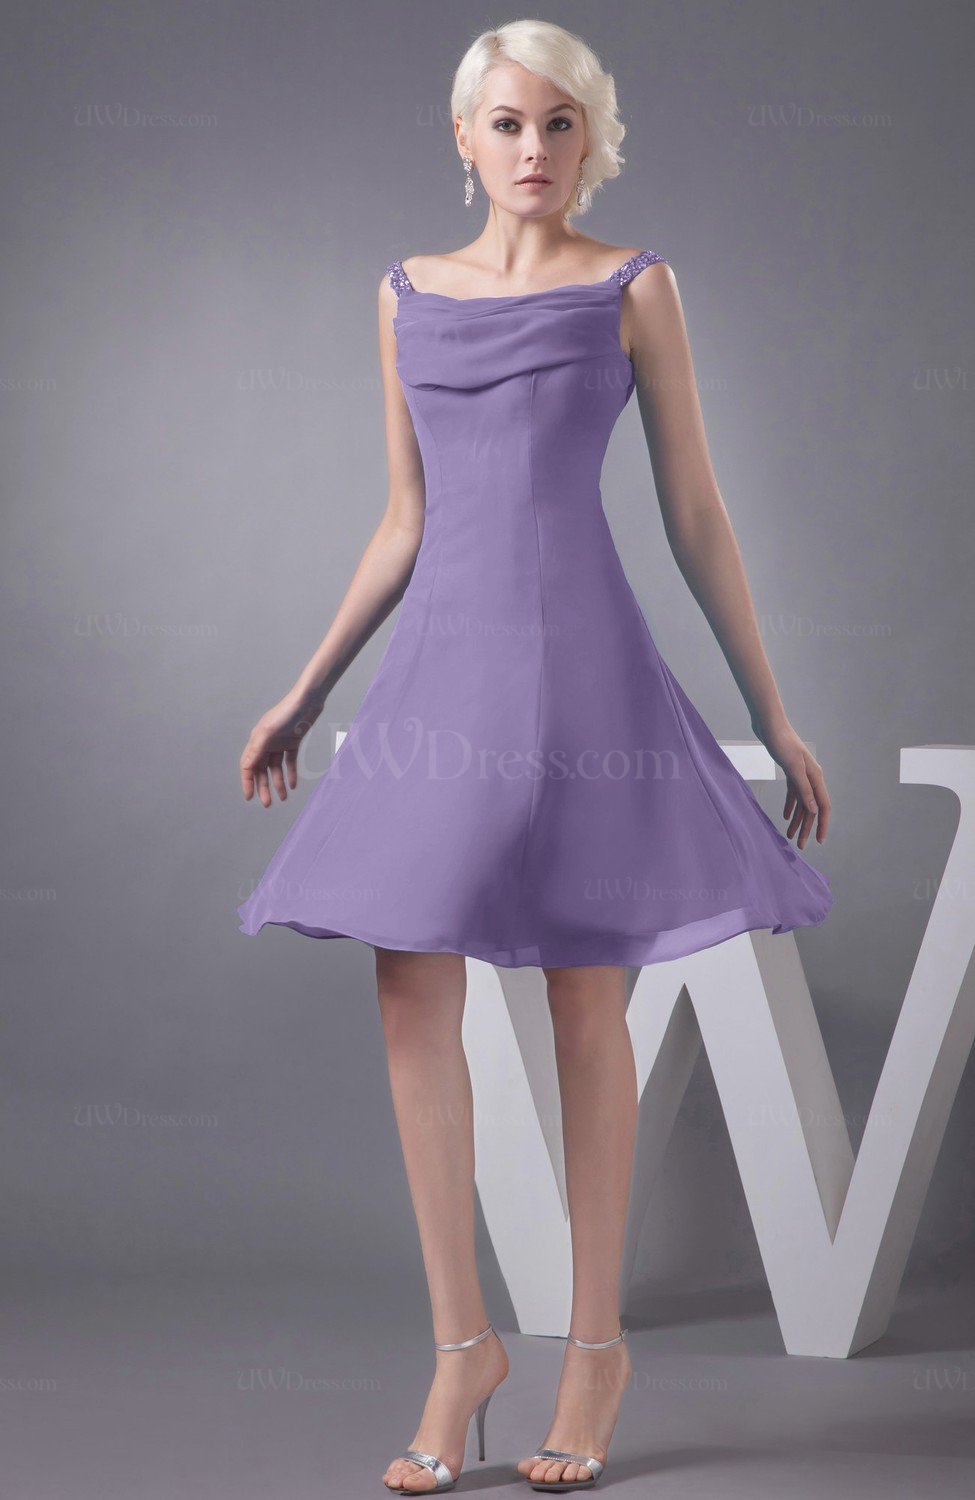 a323ac81745 Chalk Violet Chiffon Bridesmaid Dress Short Winter Fall Formal Casual Chic  for Less (Style D90362)